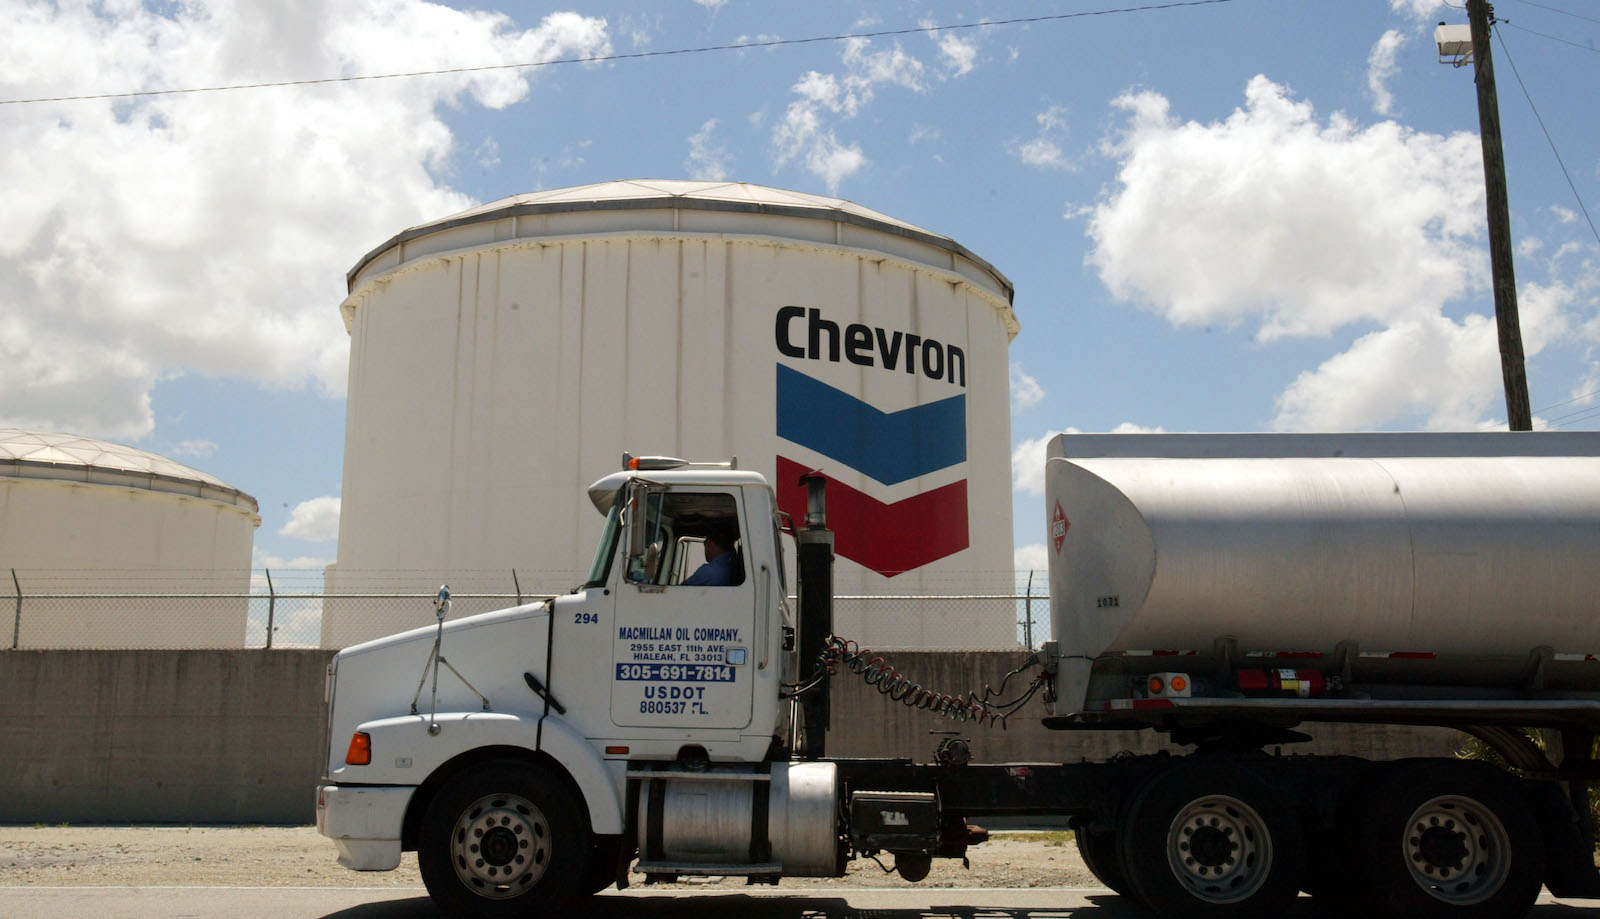 Chevron's climate plan: Use wind and solar power to drill for oil